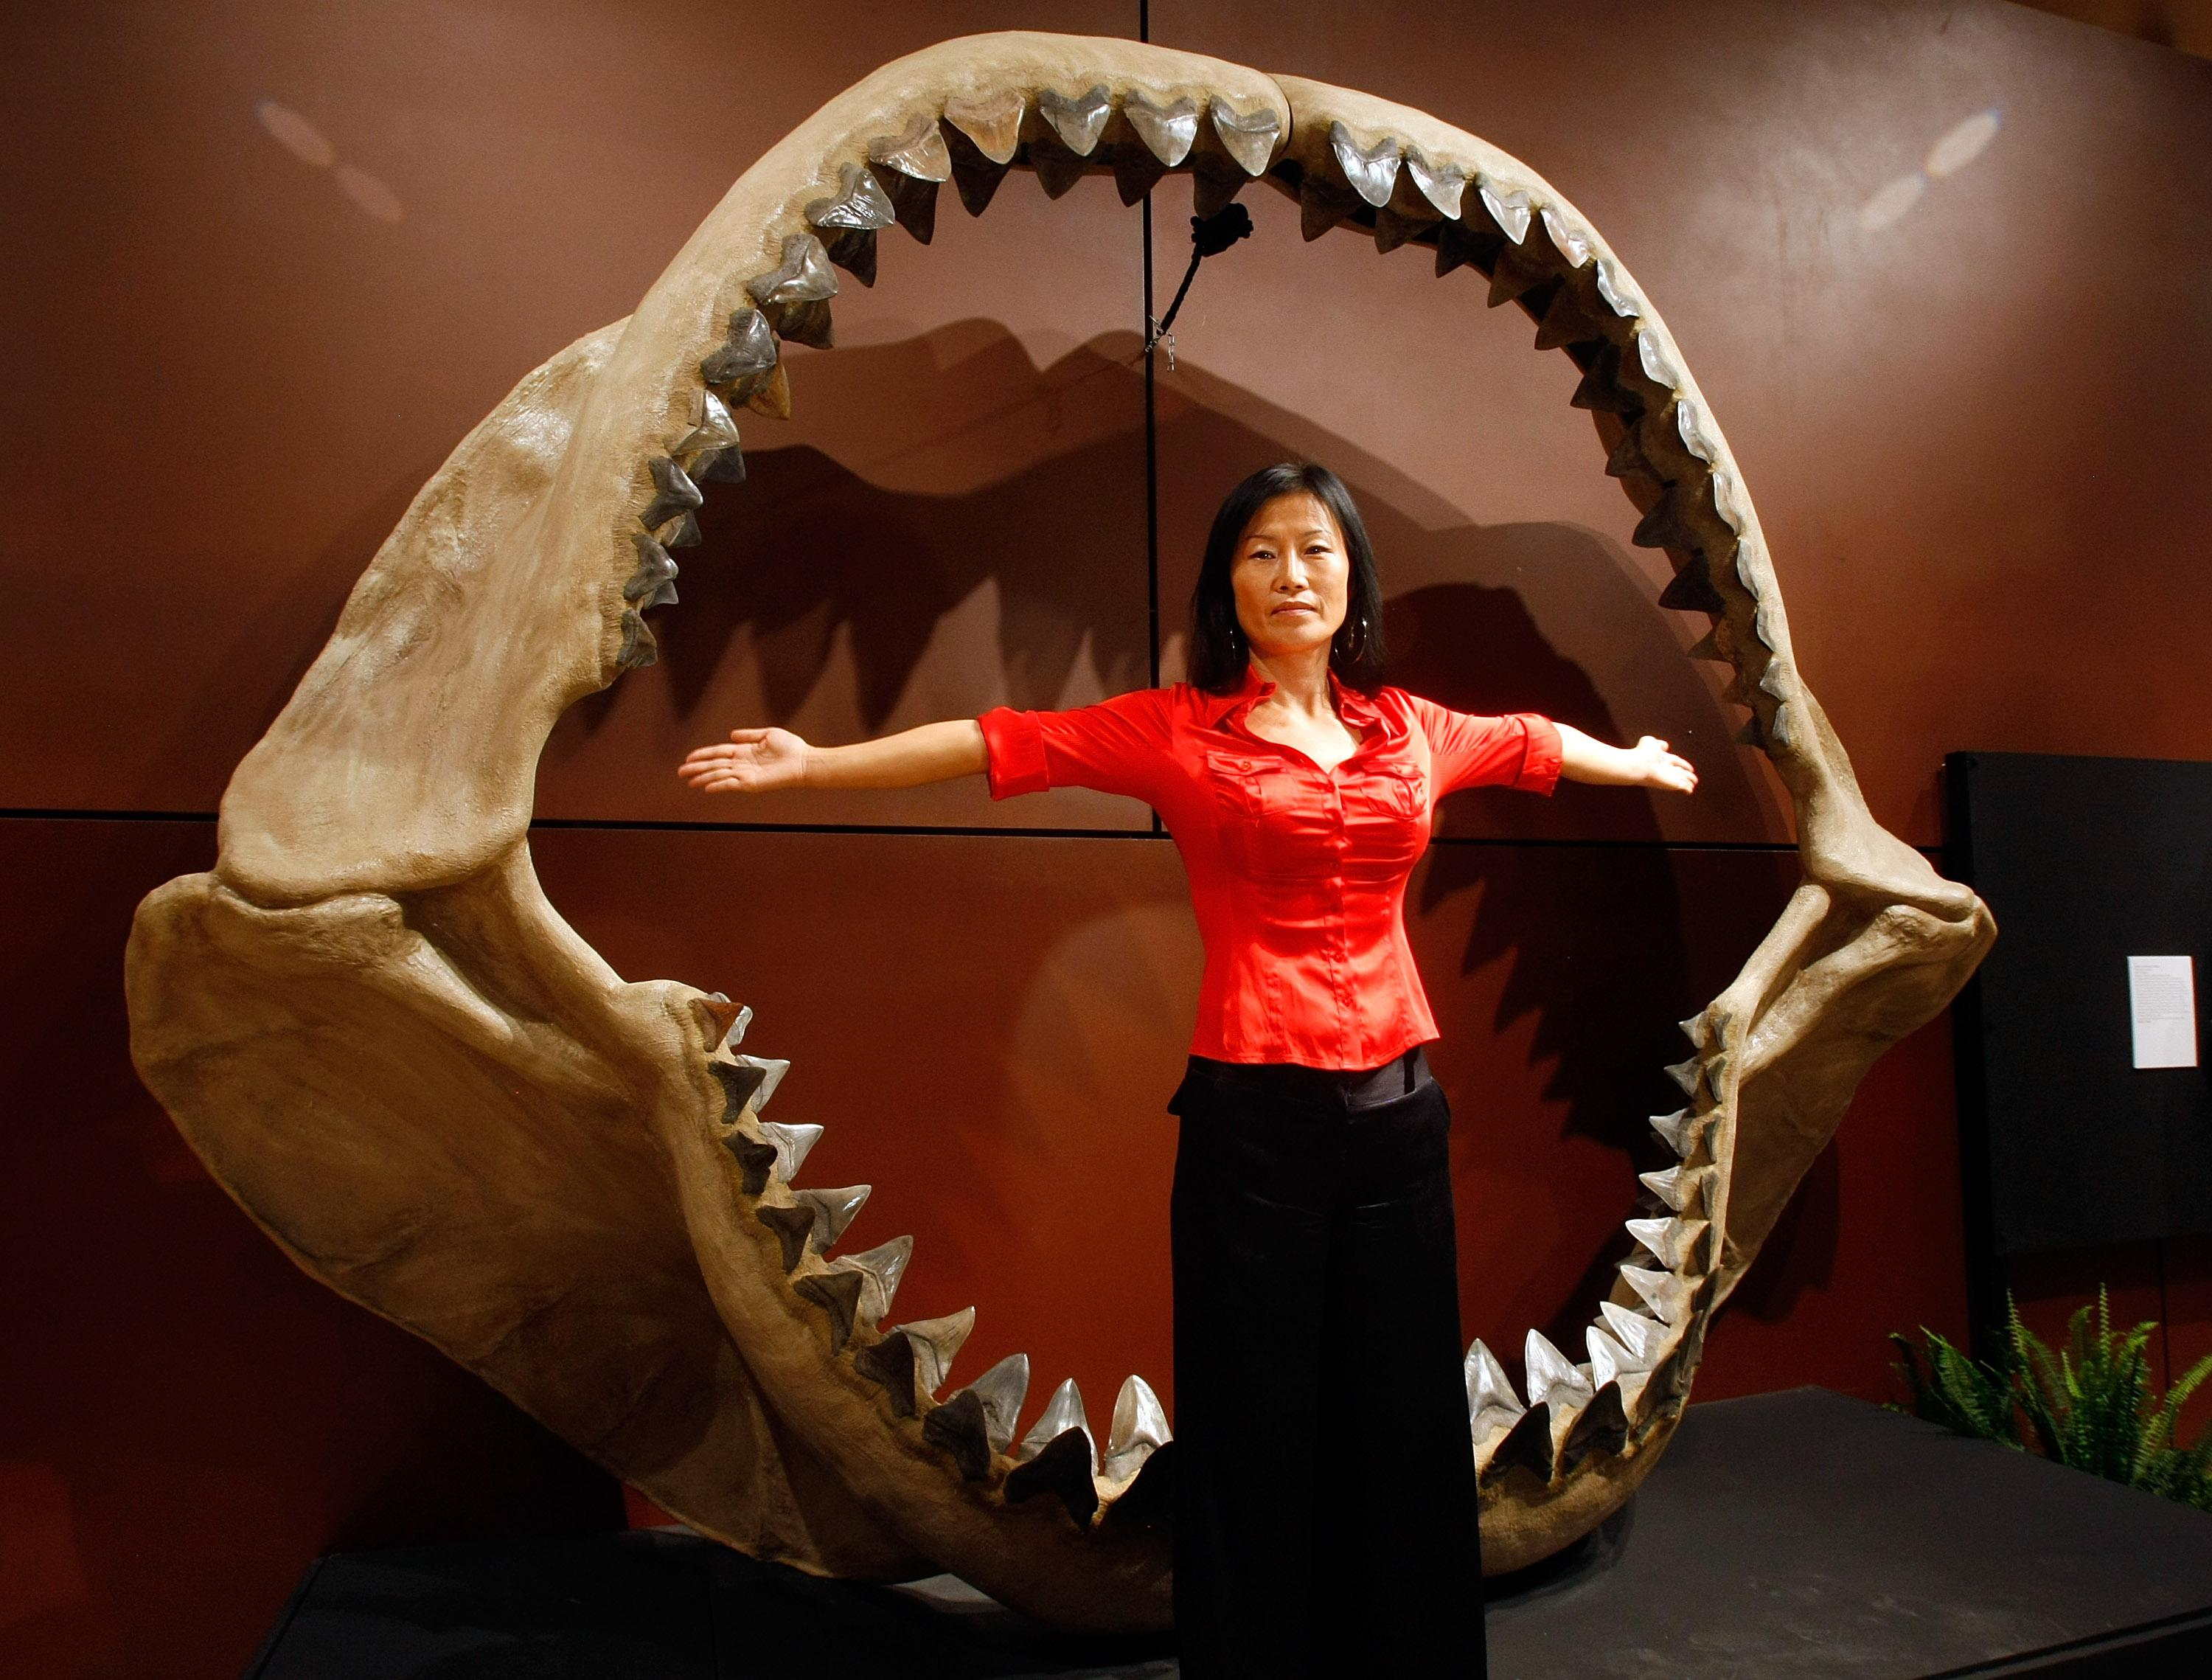 Is Megalodon Still Alive? Facts About The Real Shark